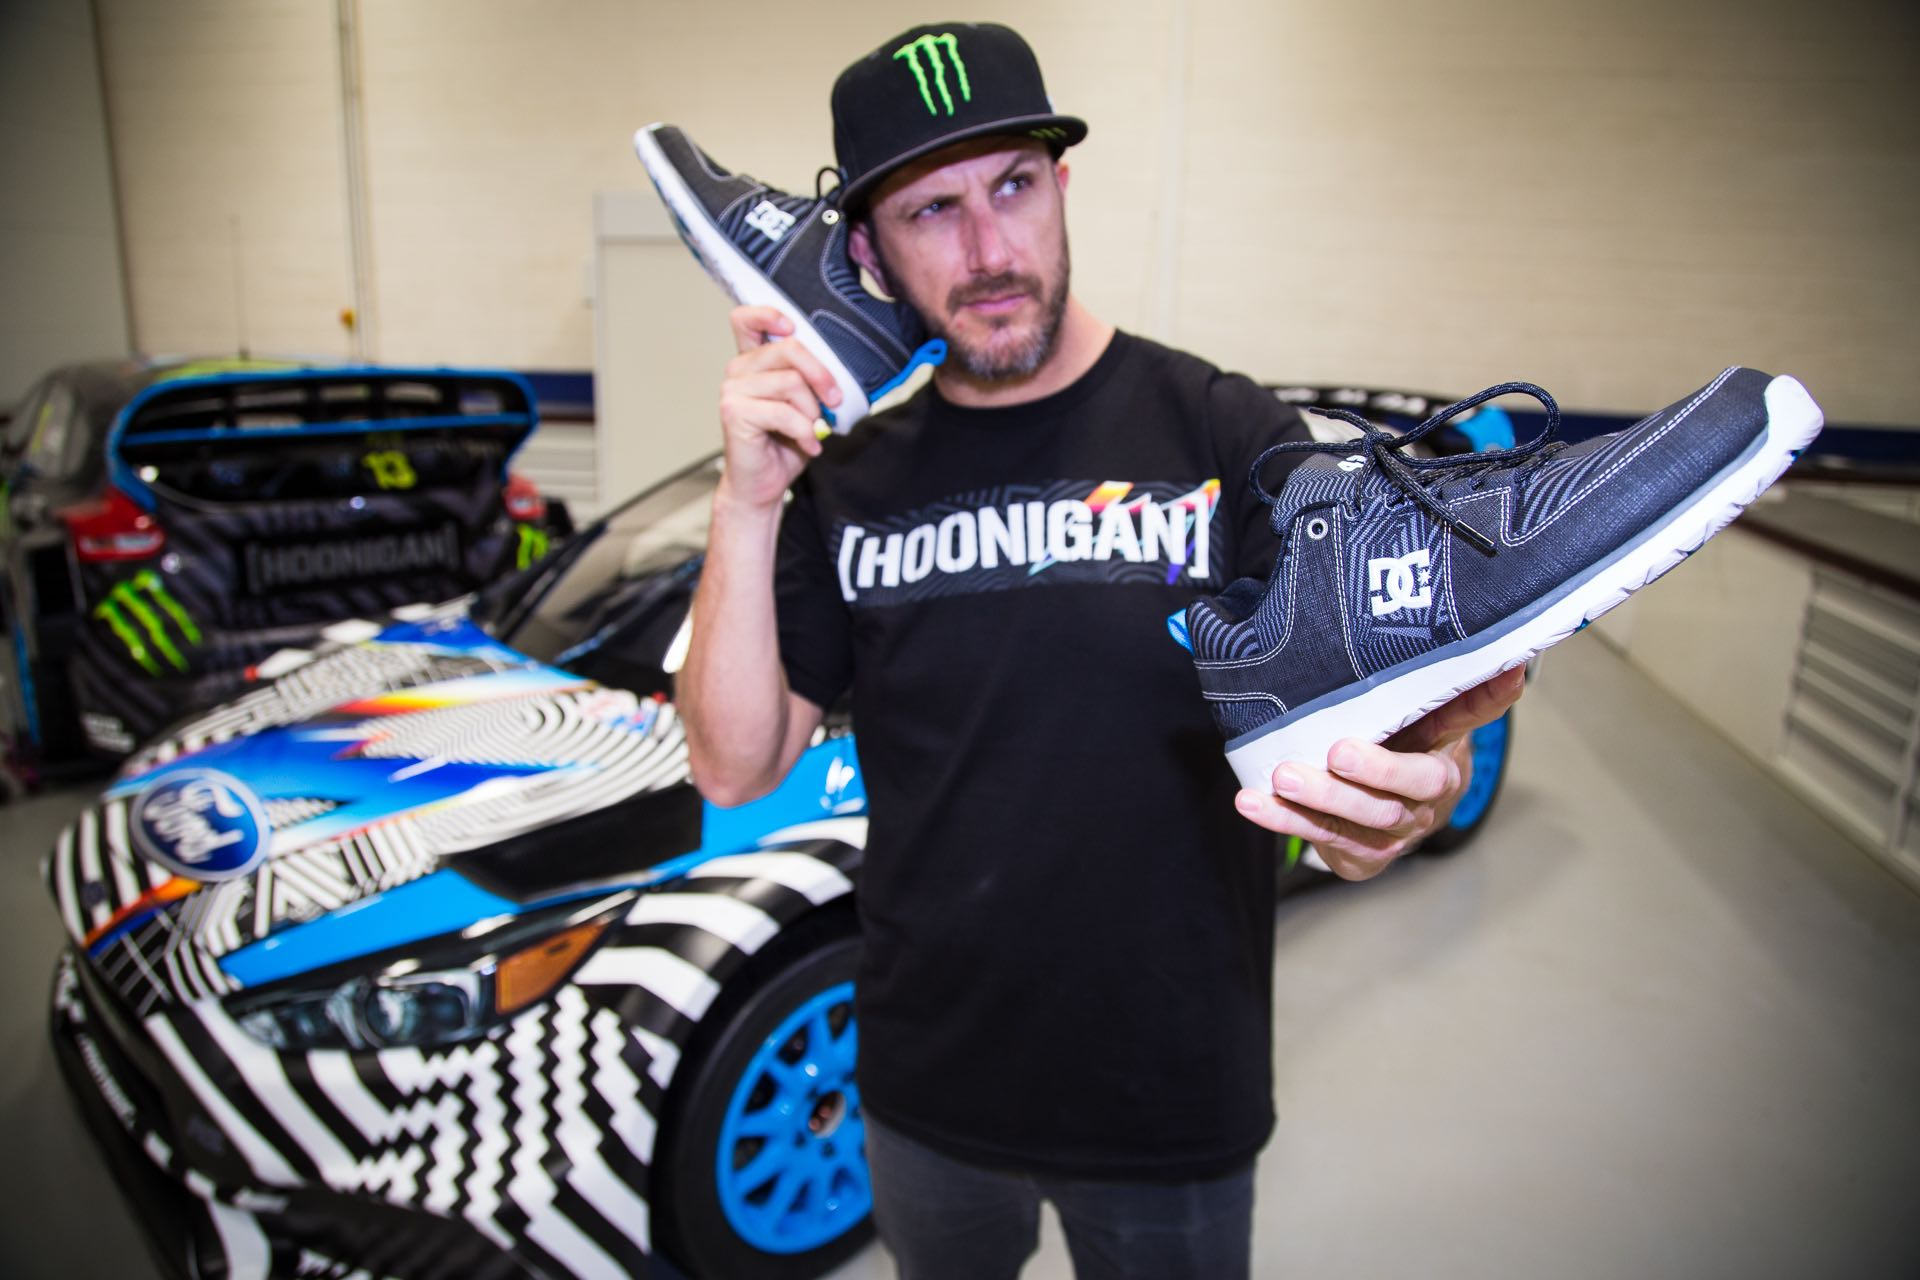 New Ken Block Shoes